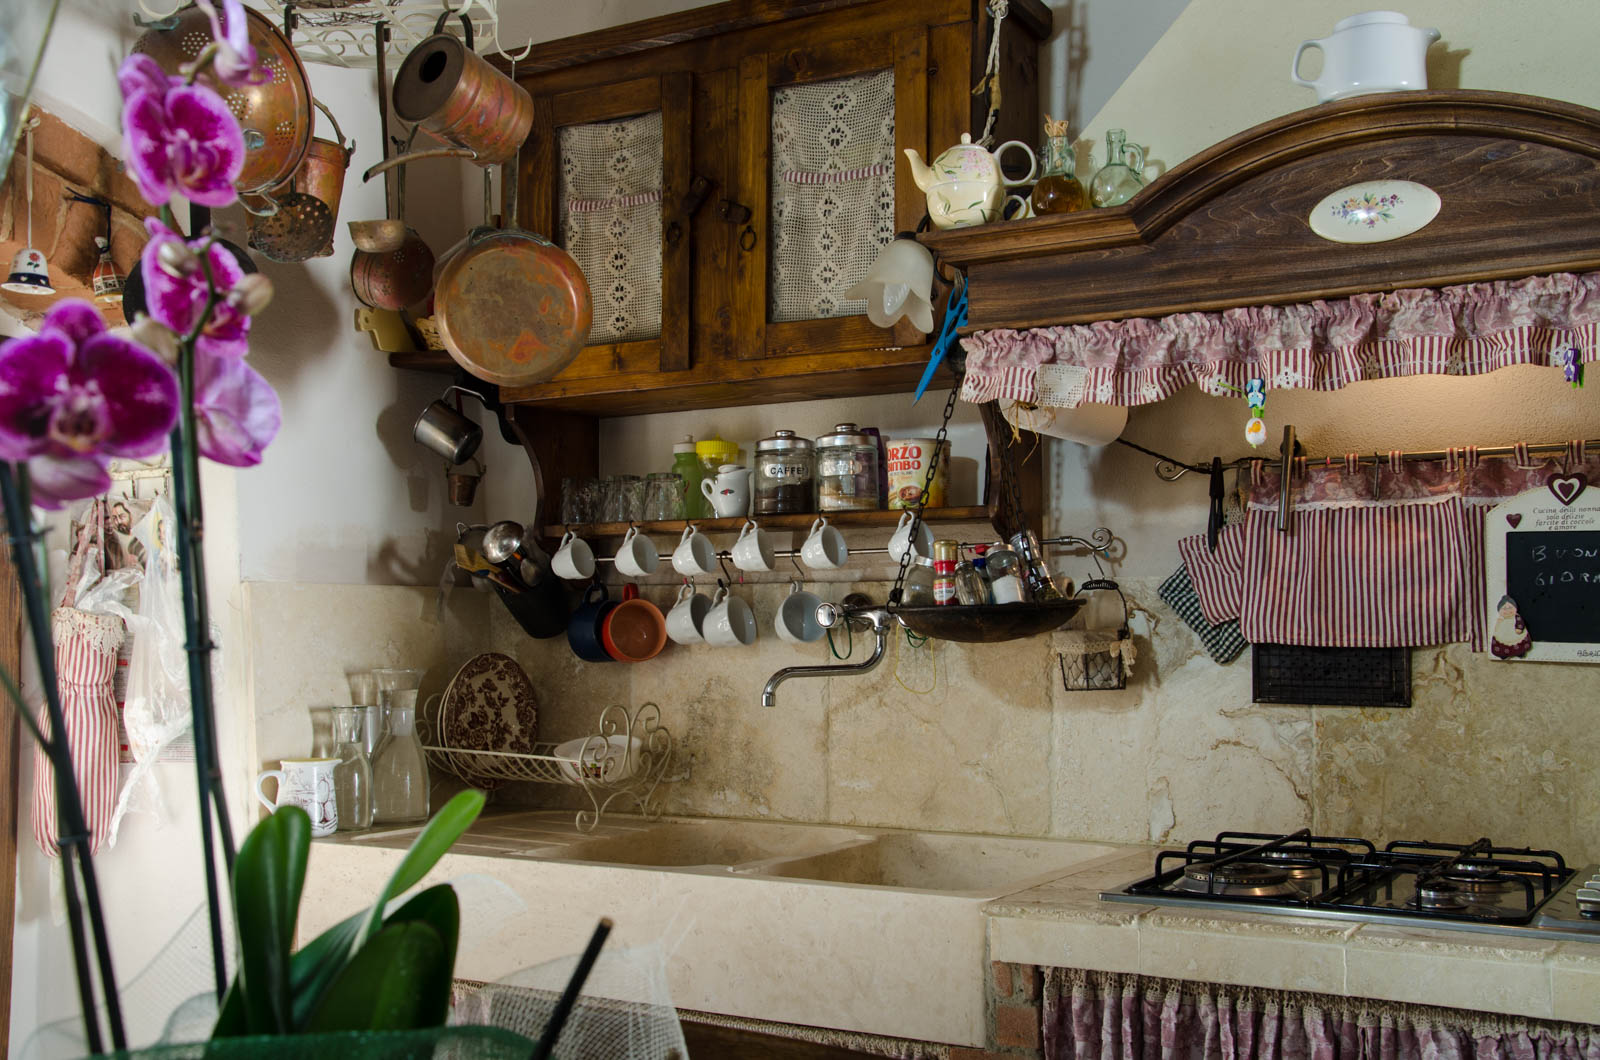 Come Decorare Una Cucina Rustica cucina in travertino dallo stile country - pietre di rapolano